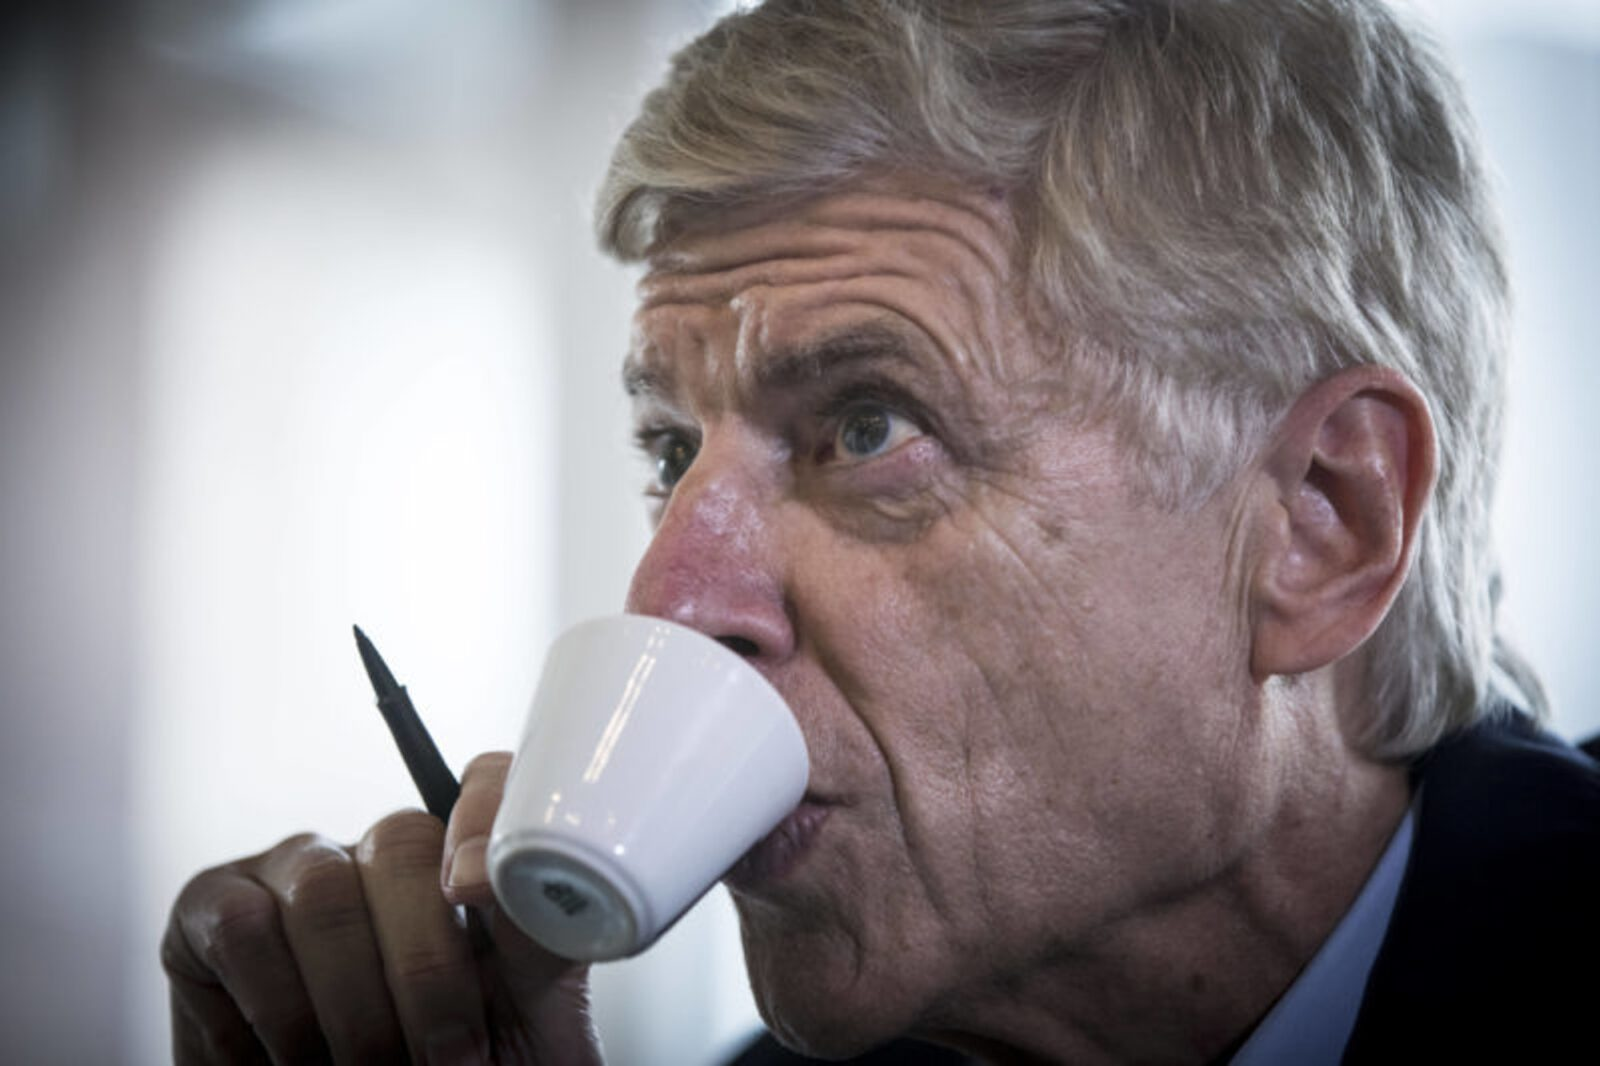 Arsene Wenger: World Cup every 2 years, reduce domestic leagues to 18, find meaning